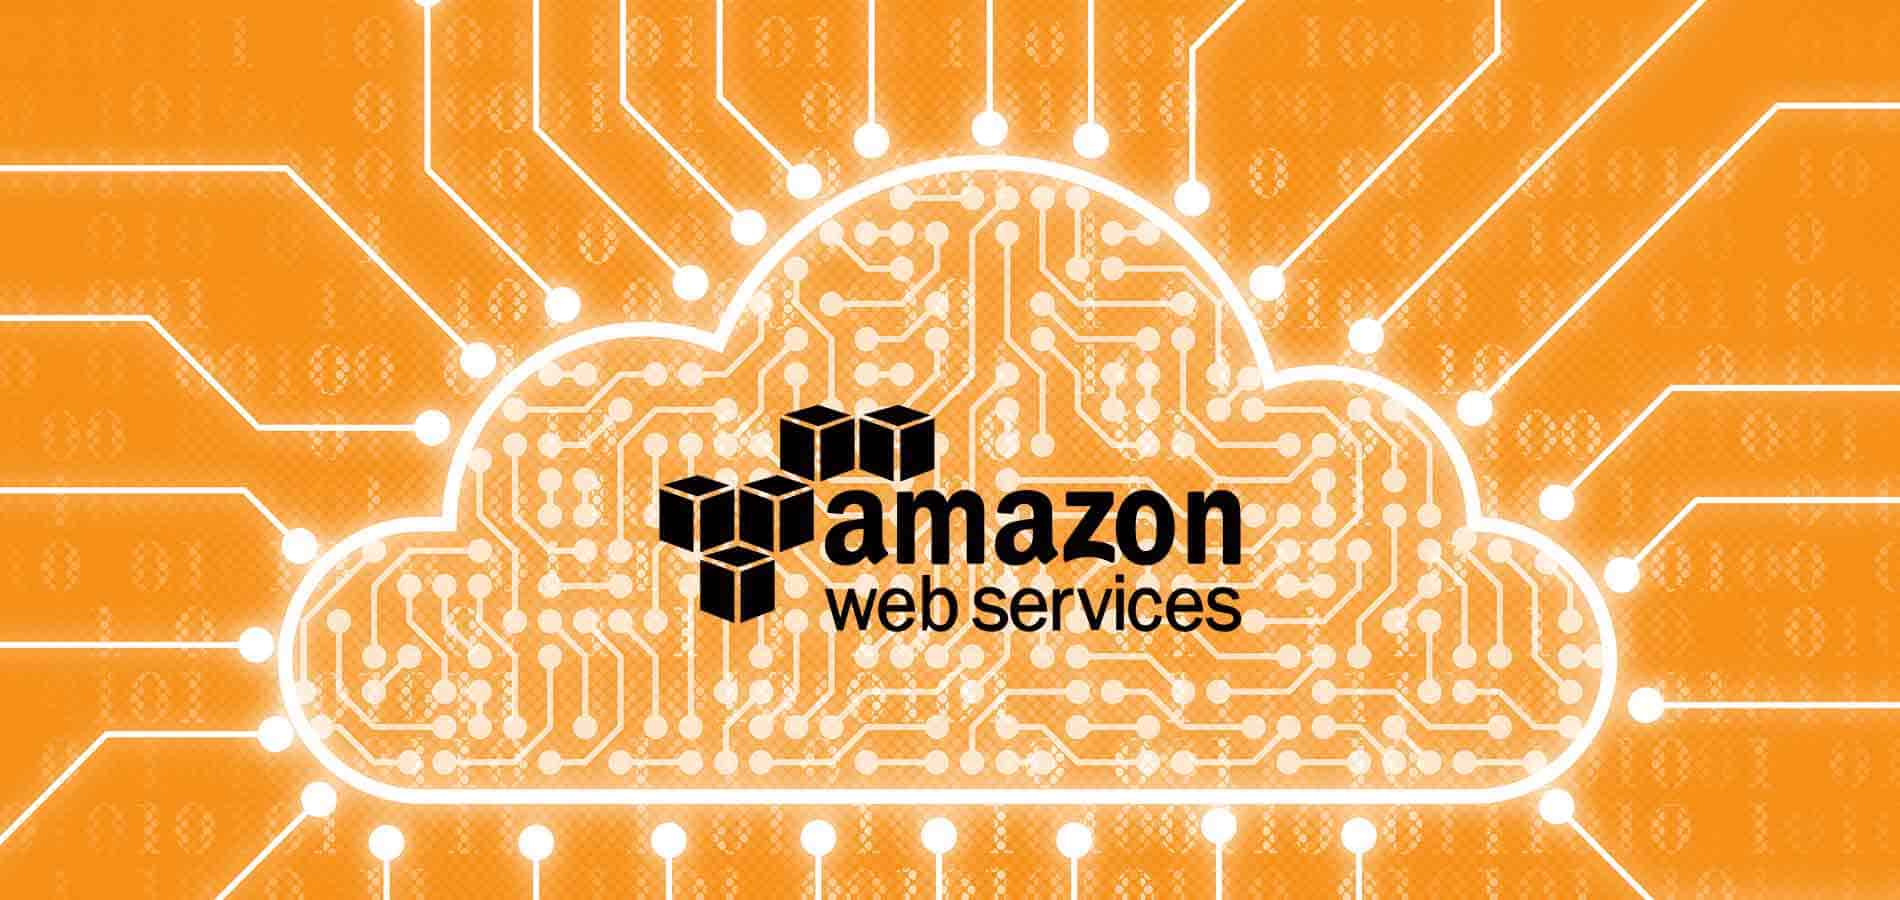 Join us for a FREE Amazon Web Services (AWS) Job Assist Event